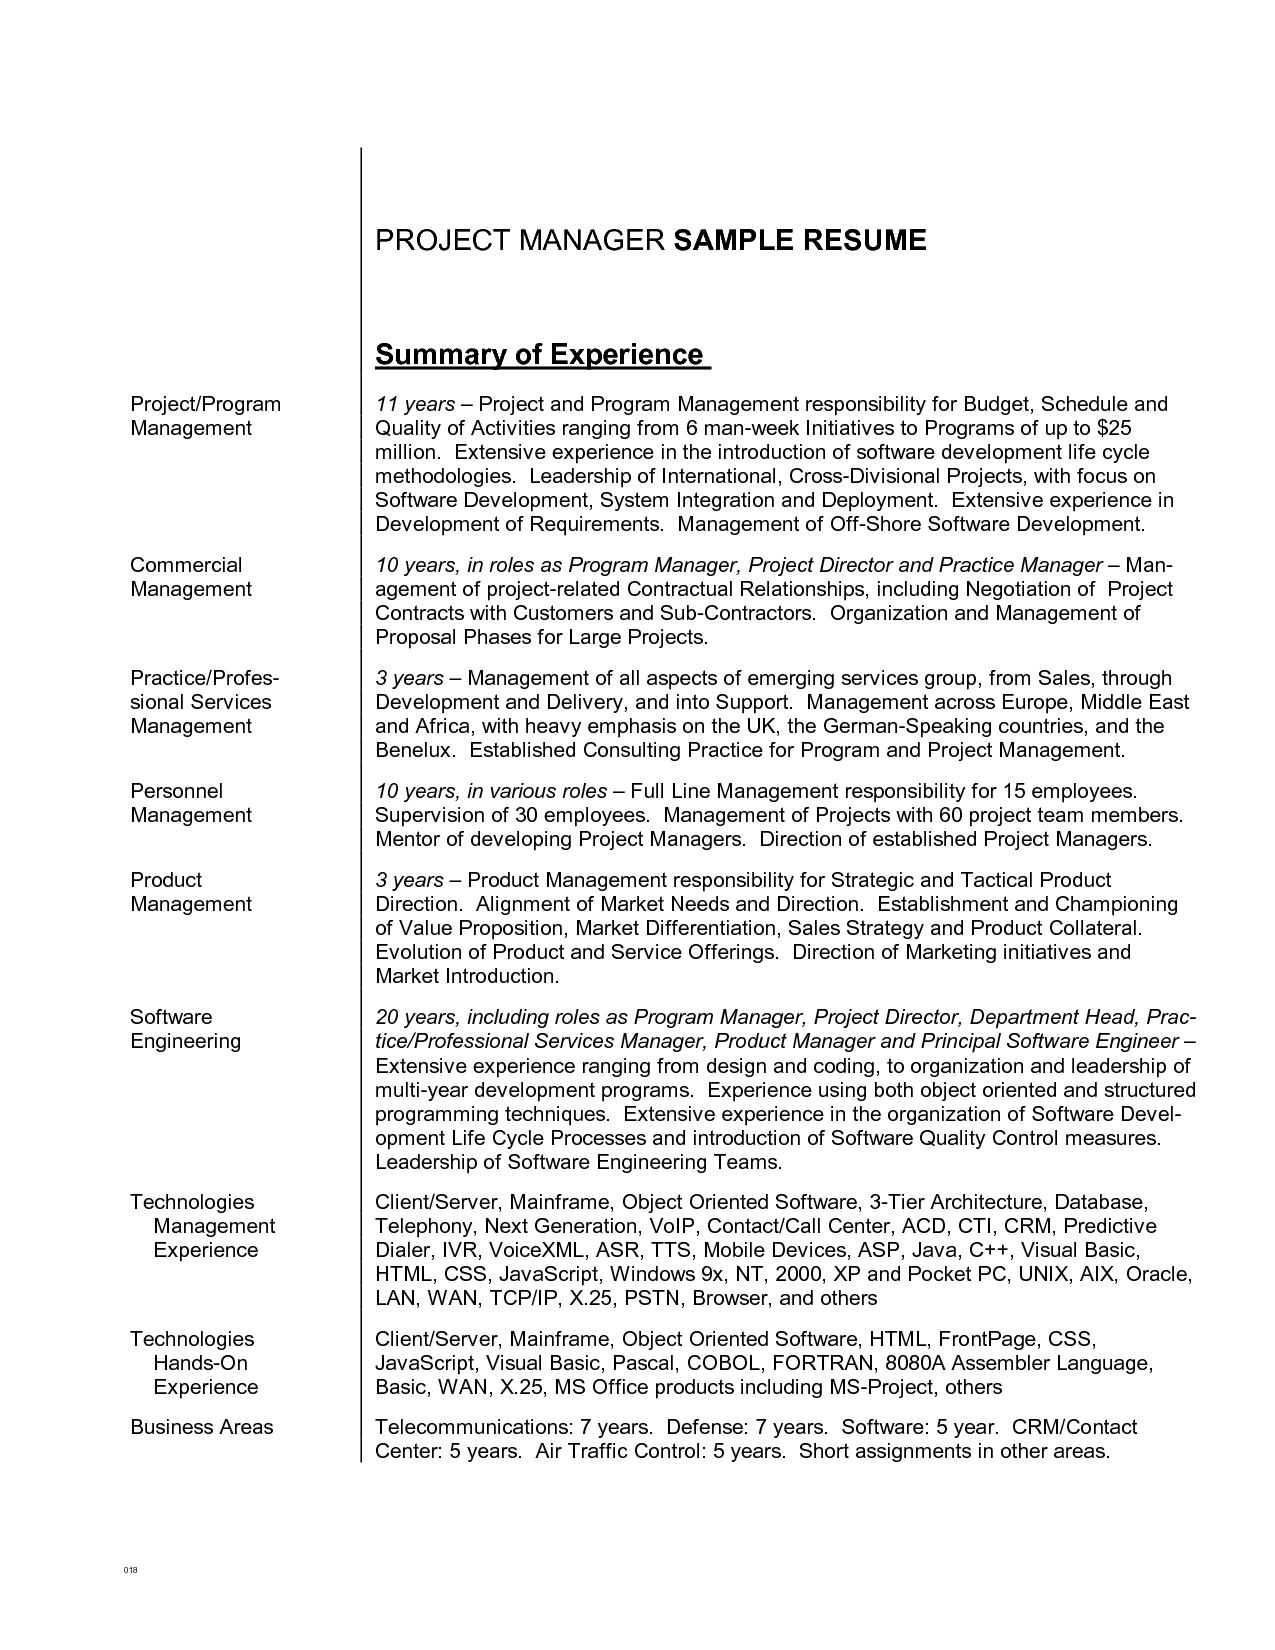 Resume Examples With Summary Examples Resume Resumeexamples Summary Resume Summary Resume Summary Statement Resume Summary Examples